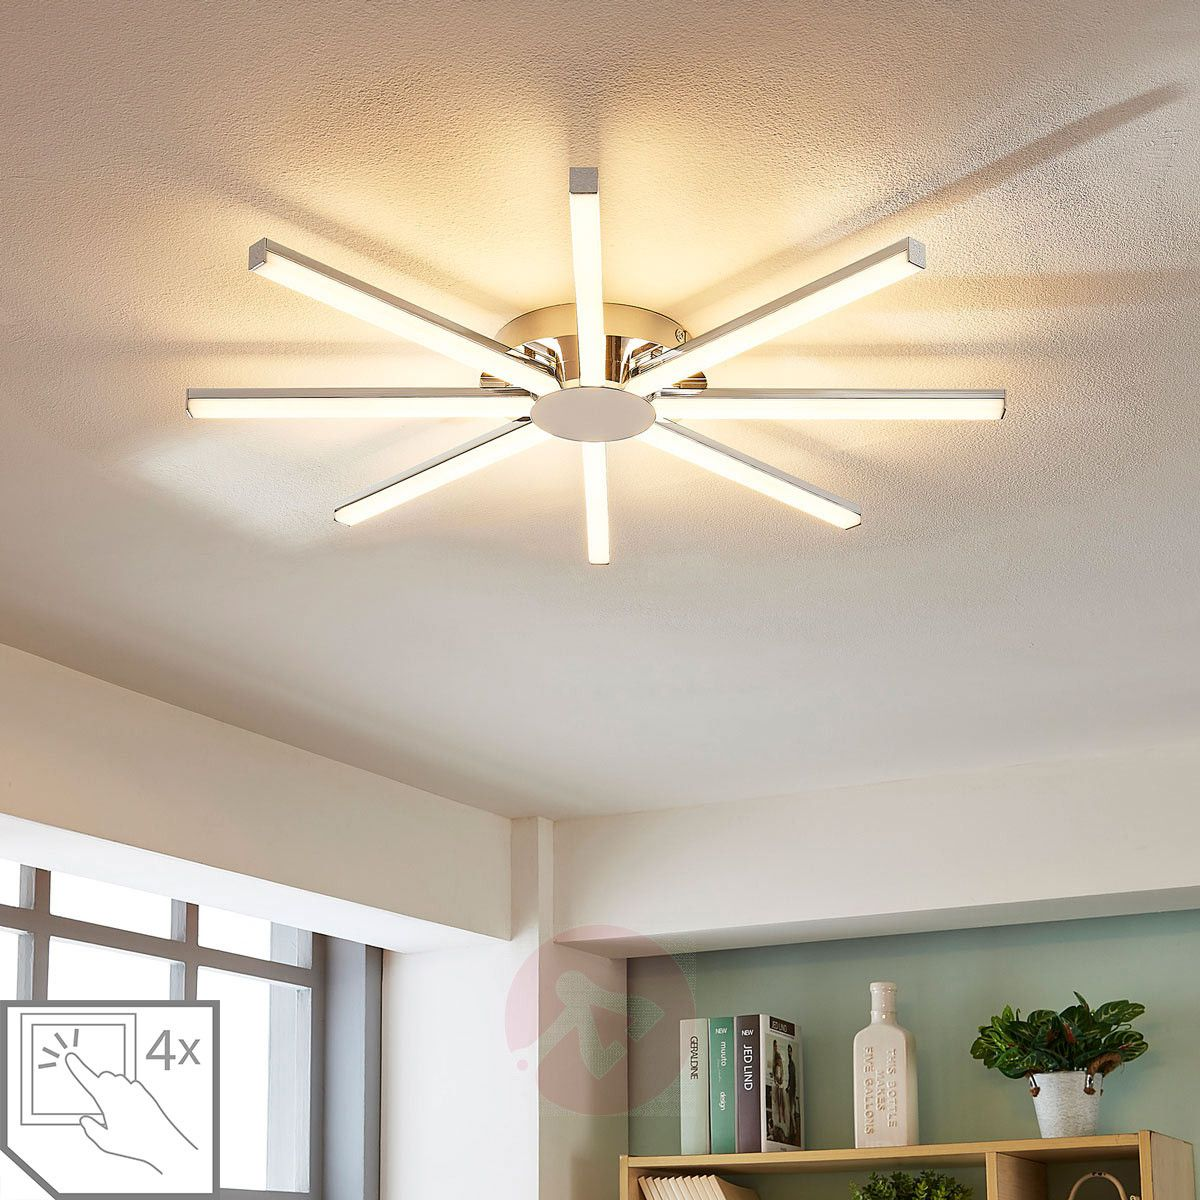 Korona Sun Shaped Led Ceiling Lamp Dimmable In 2020 Ceiling Lamp Led Ceiling Lamp Led Ceiling